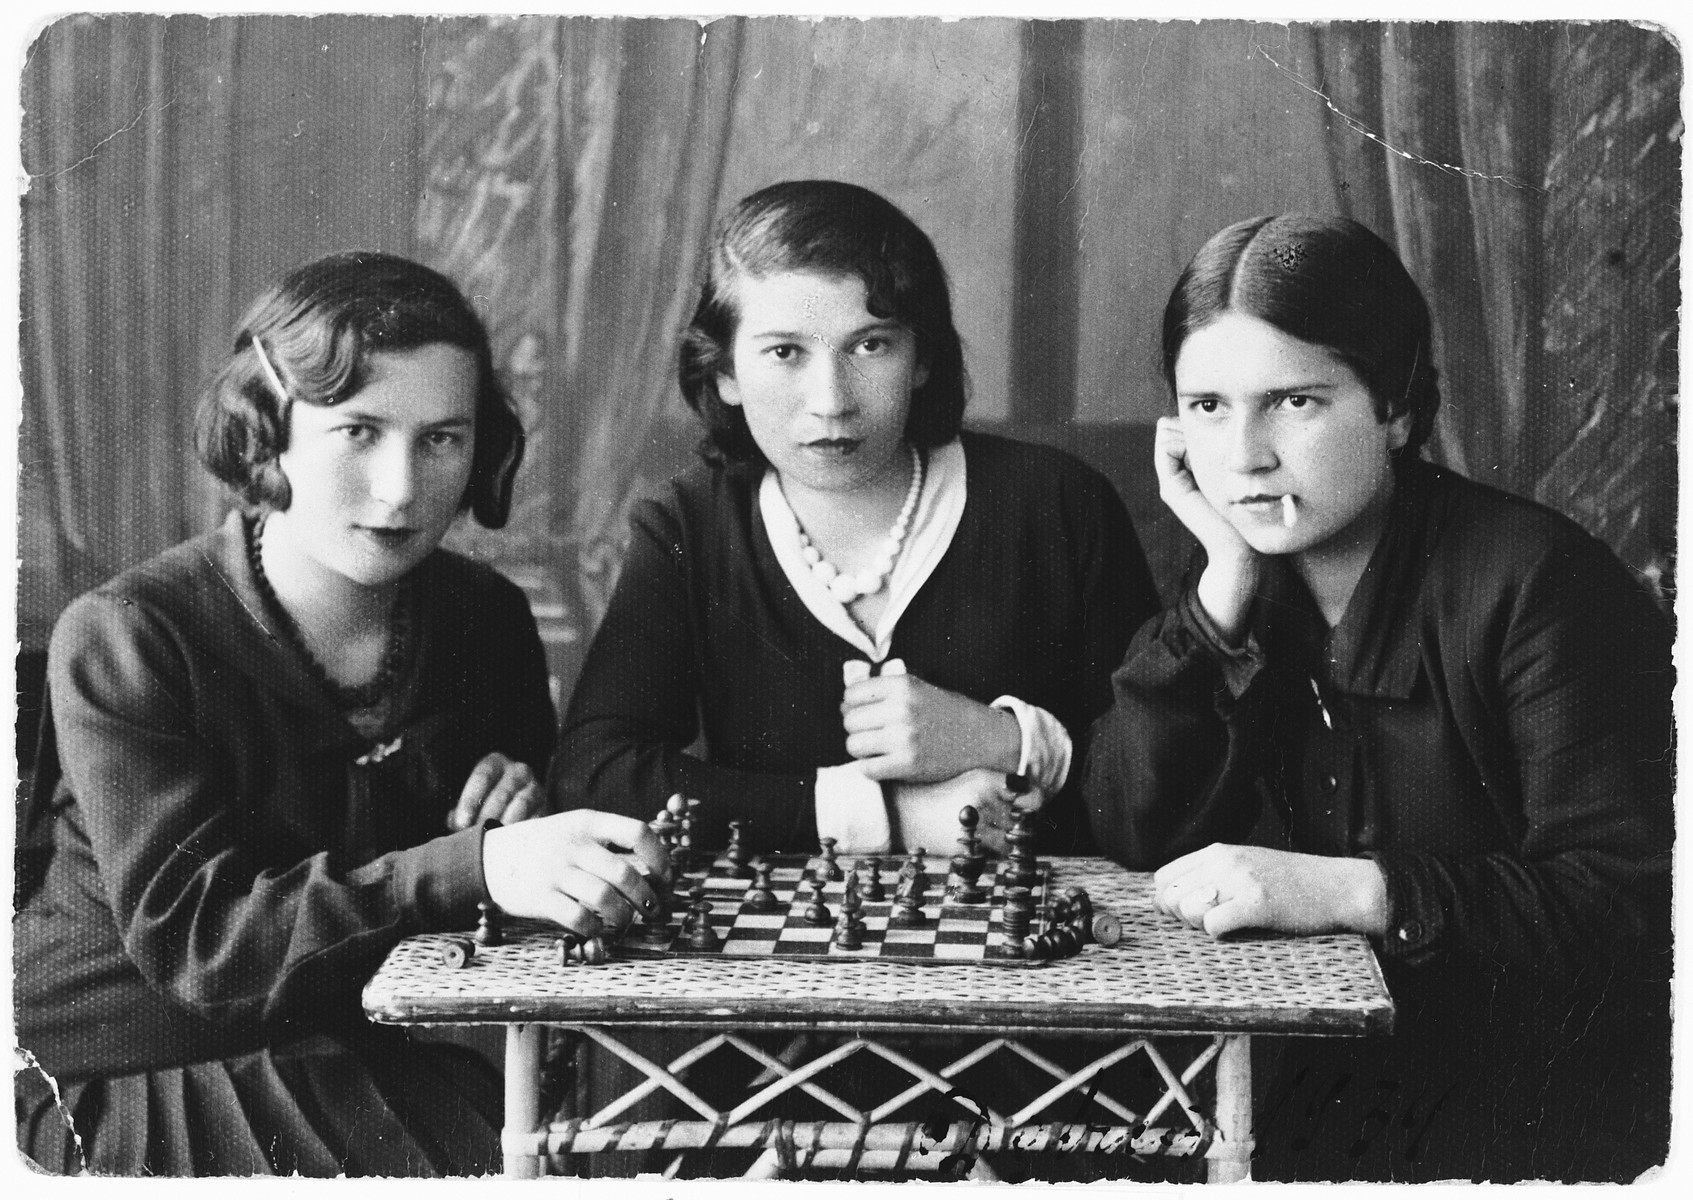 Studio portrait of three young women posing around a chessboard.  Pictured from left to right is: Frieda Fisz, an unidentified Polish schoolmate and Sara Hollander.